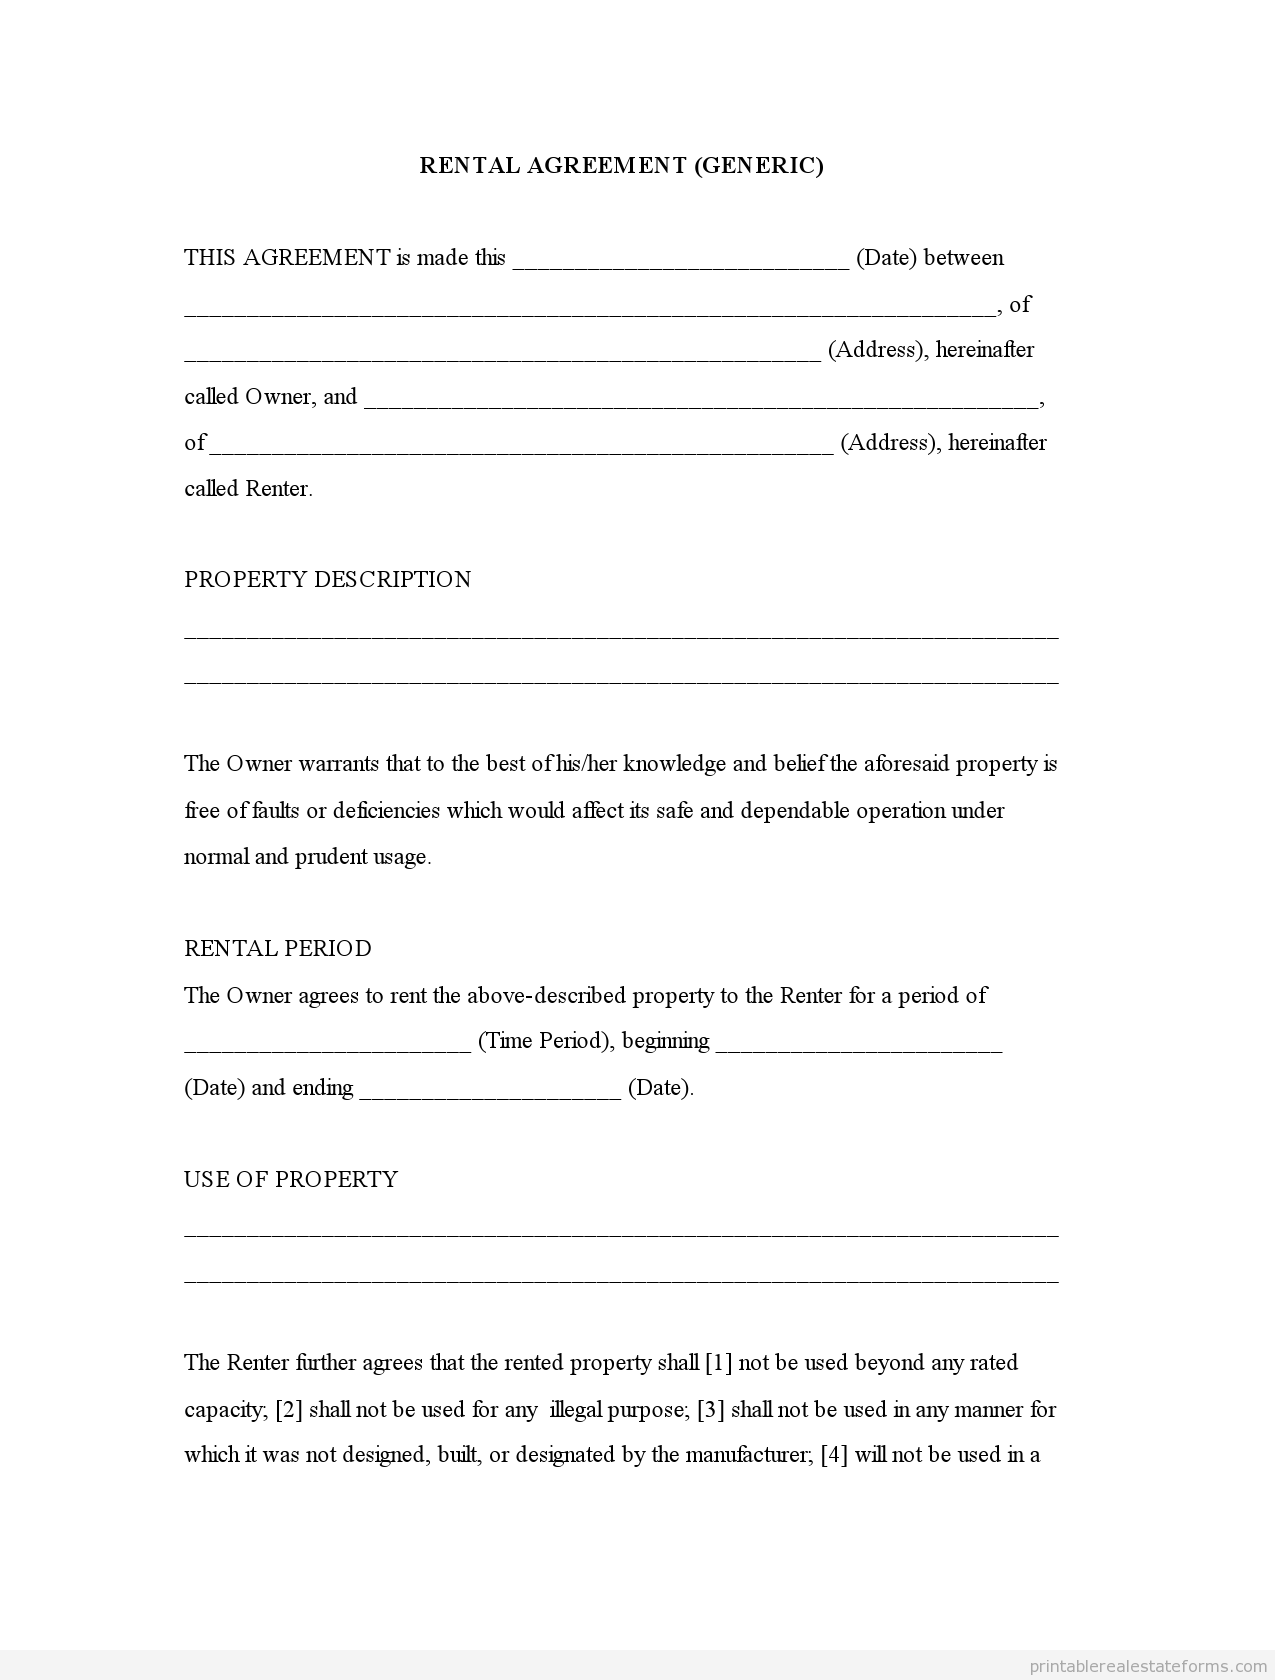 Pin By Darla Talkington On Try And Try Again Lease Agreement Free Printable Rental Agreement Templates Lease Agreement